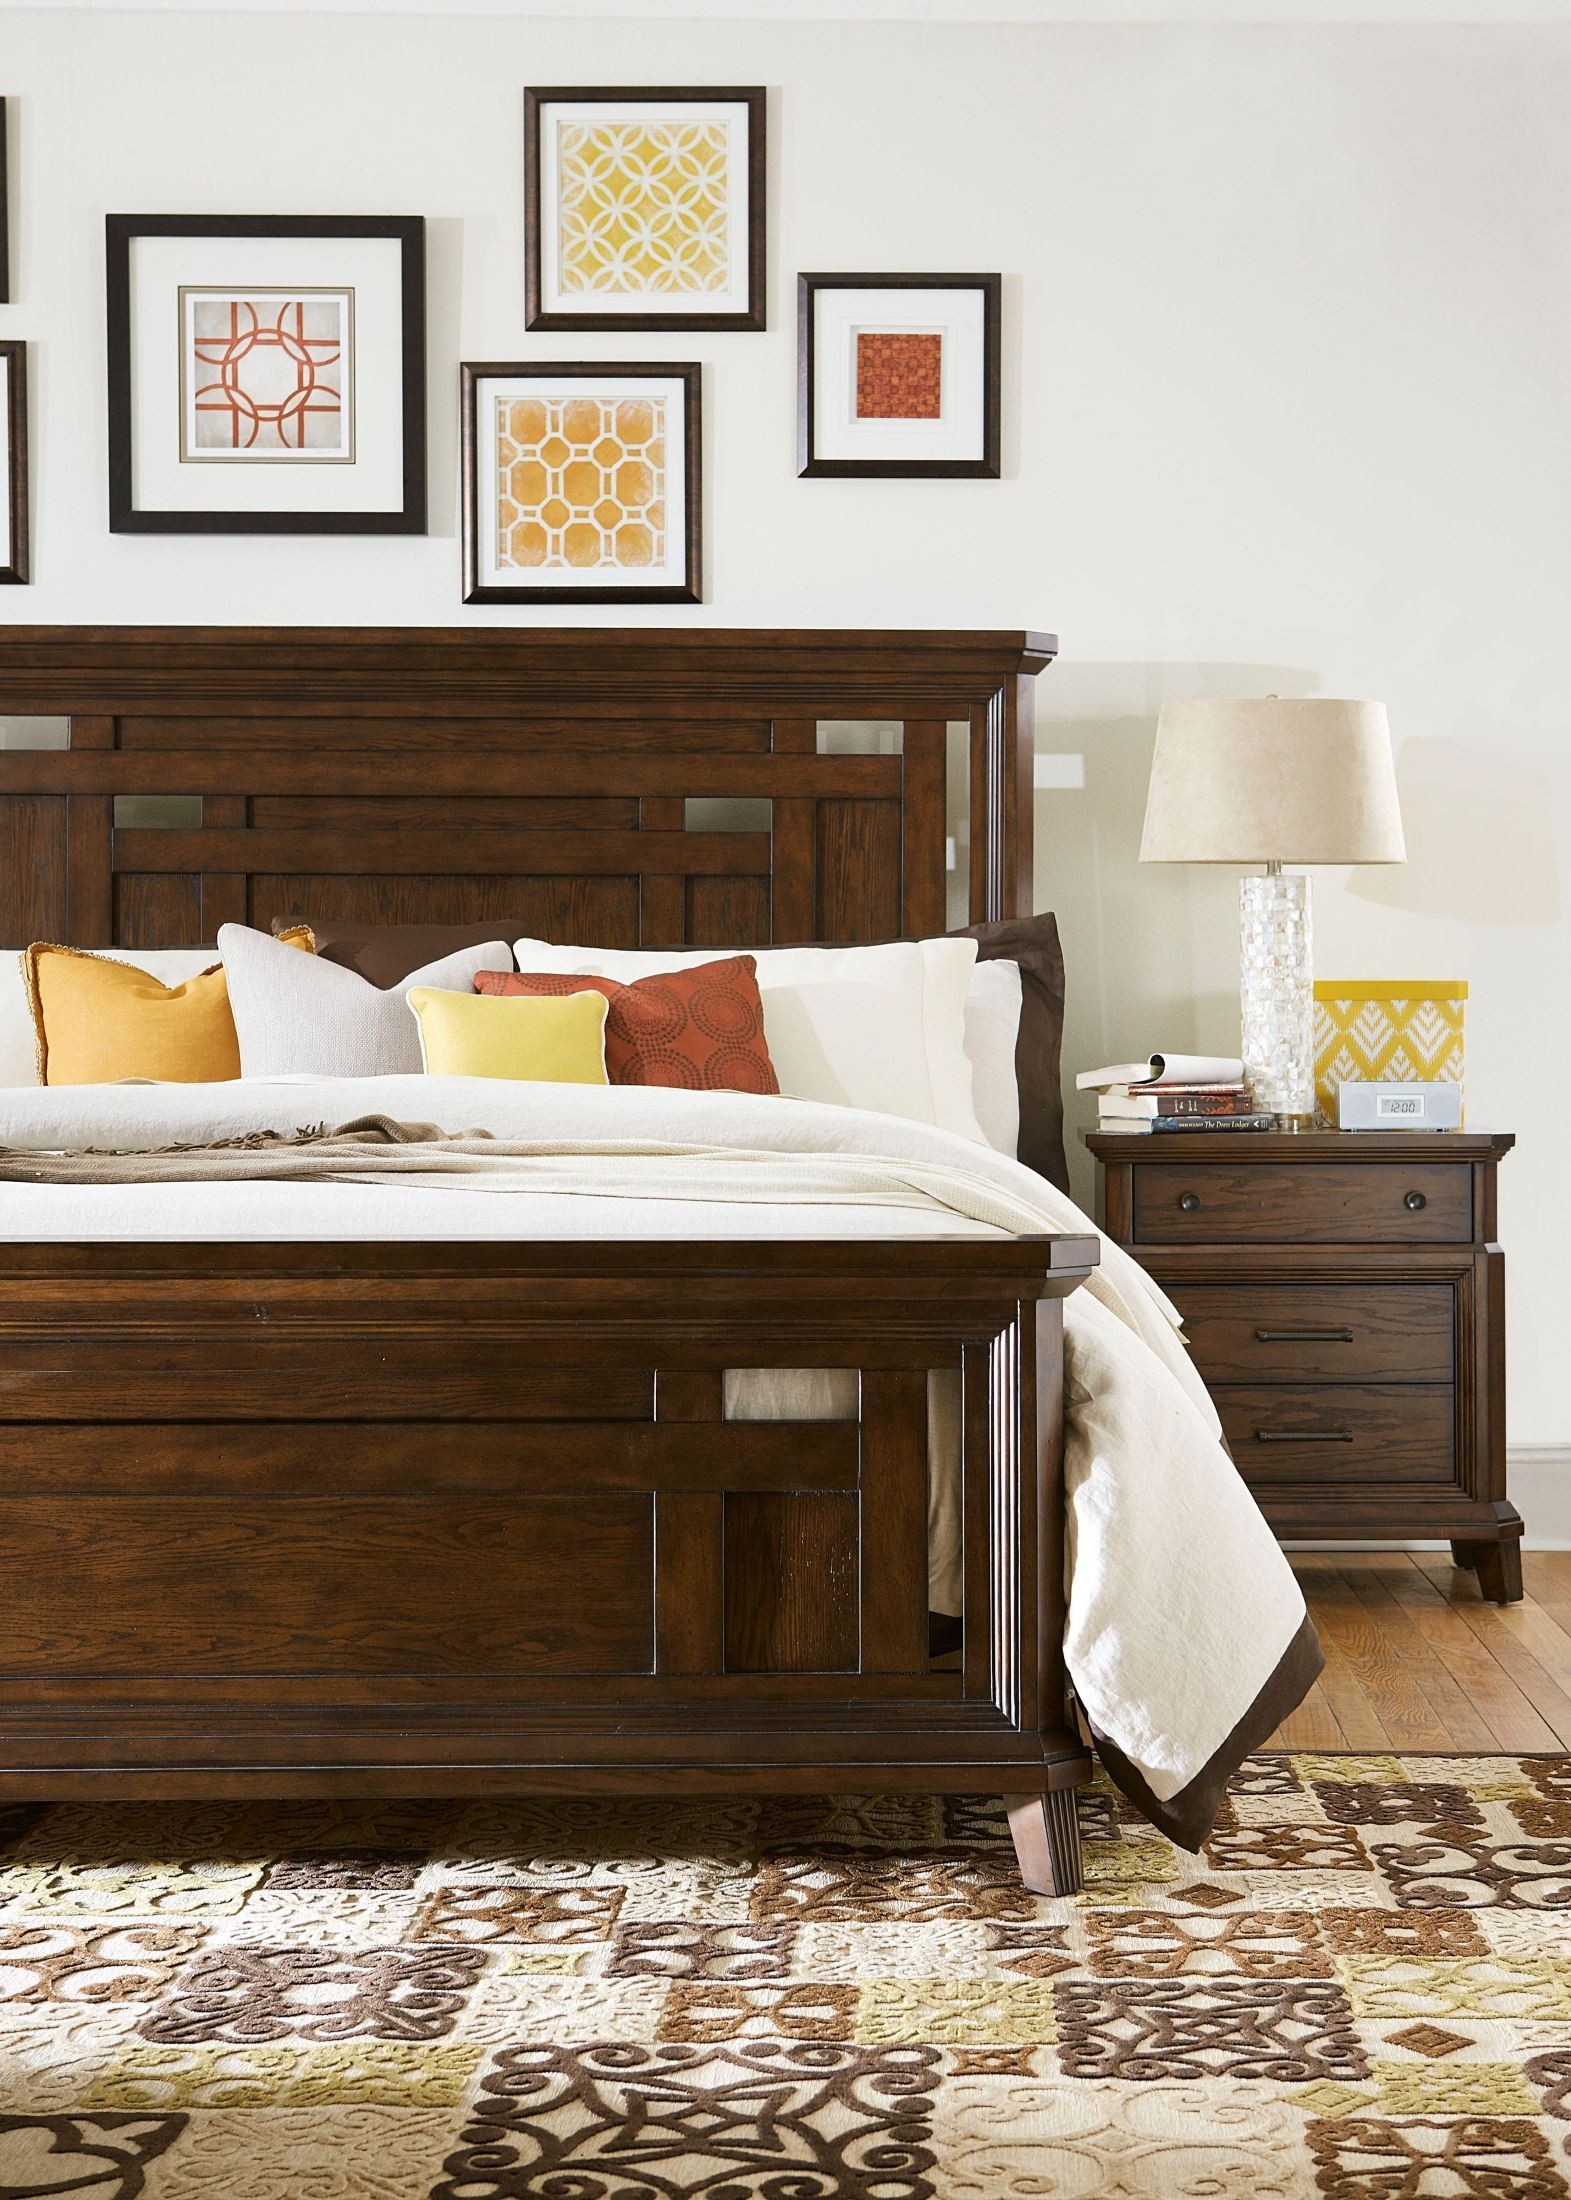 Estes Park Panel Bedroom Set From Broyhill 4364 250 251 450 Coleman Furniture